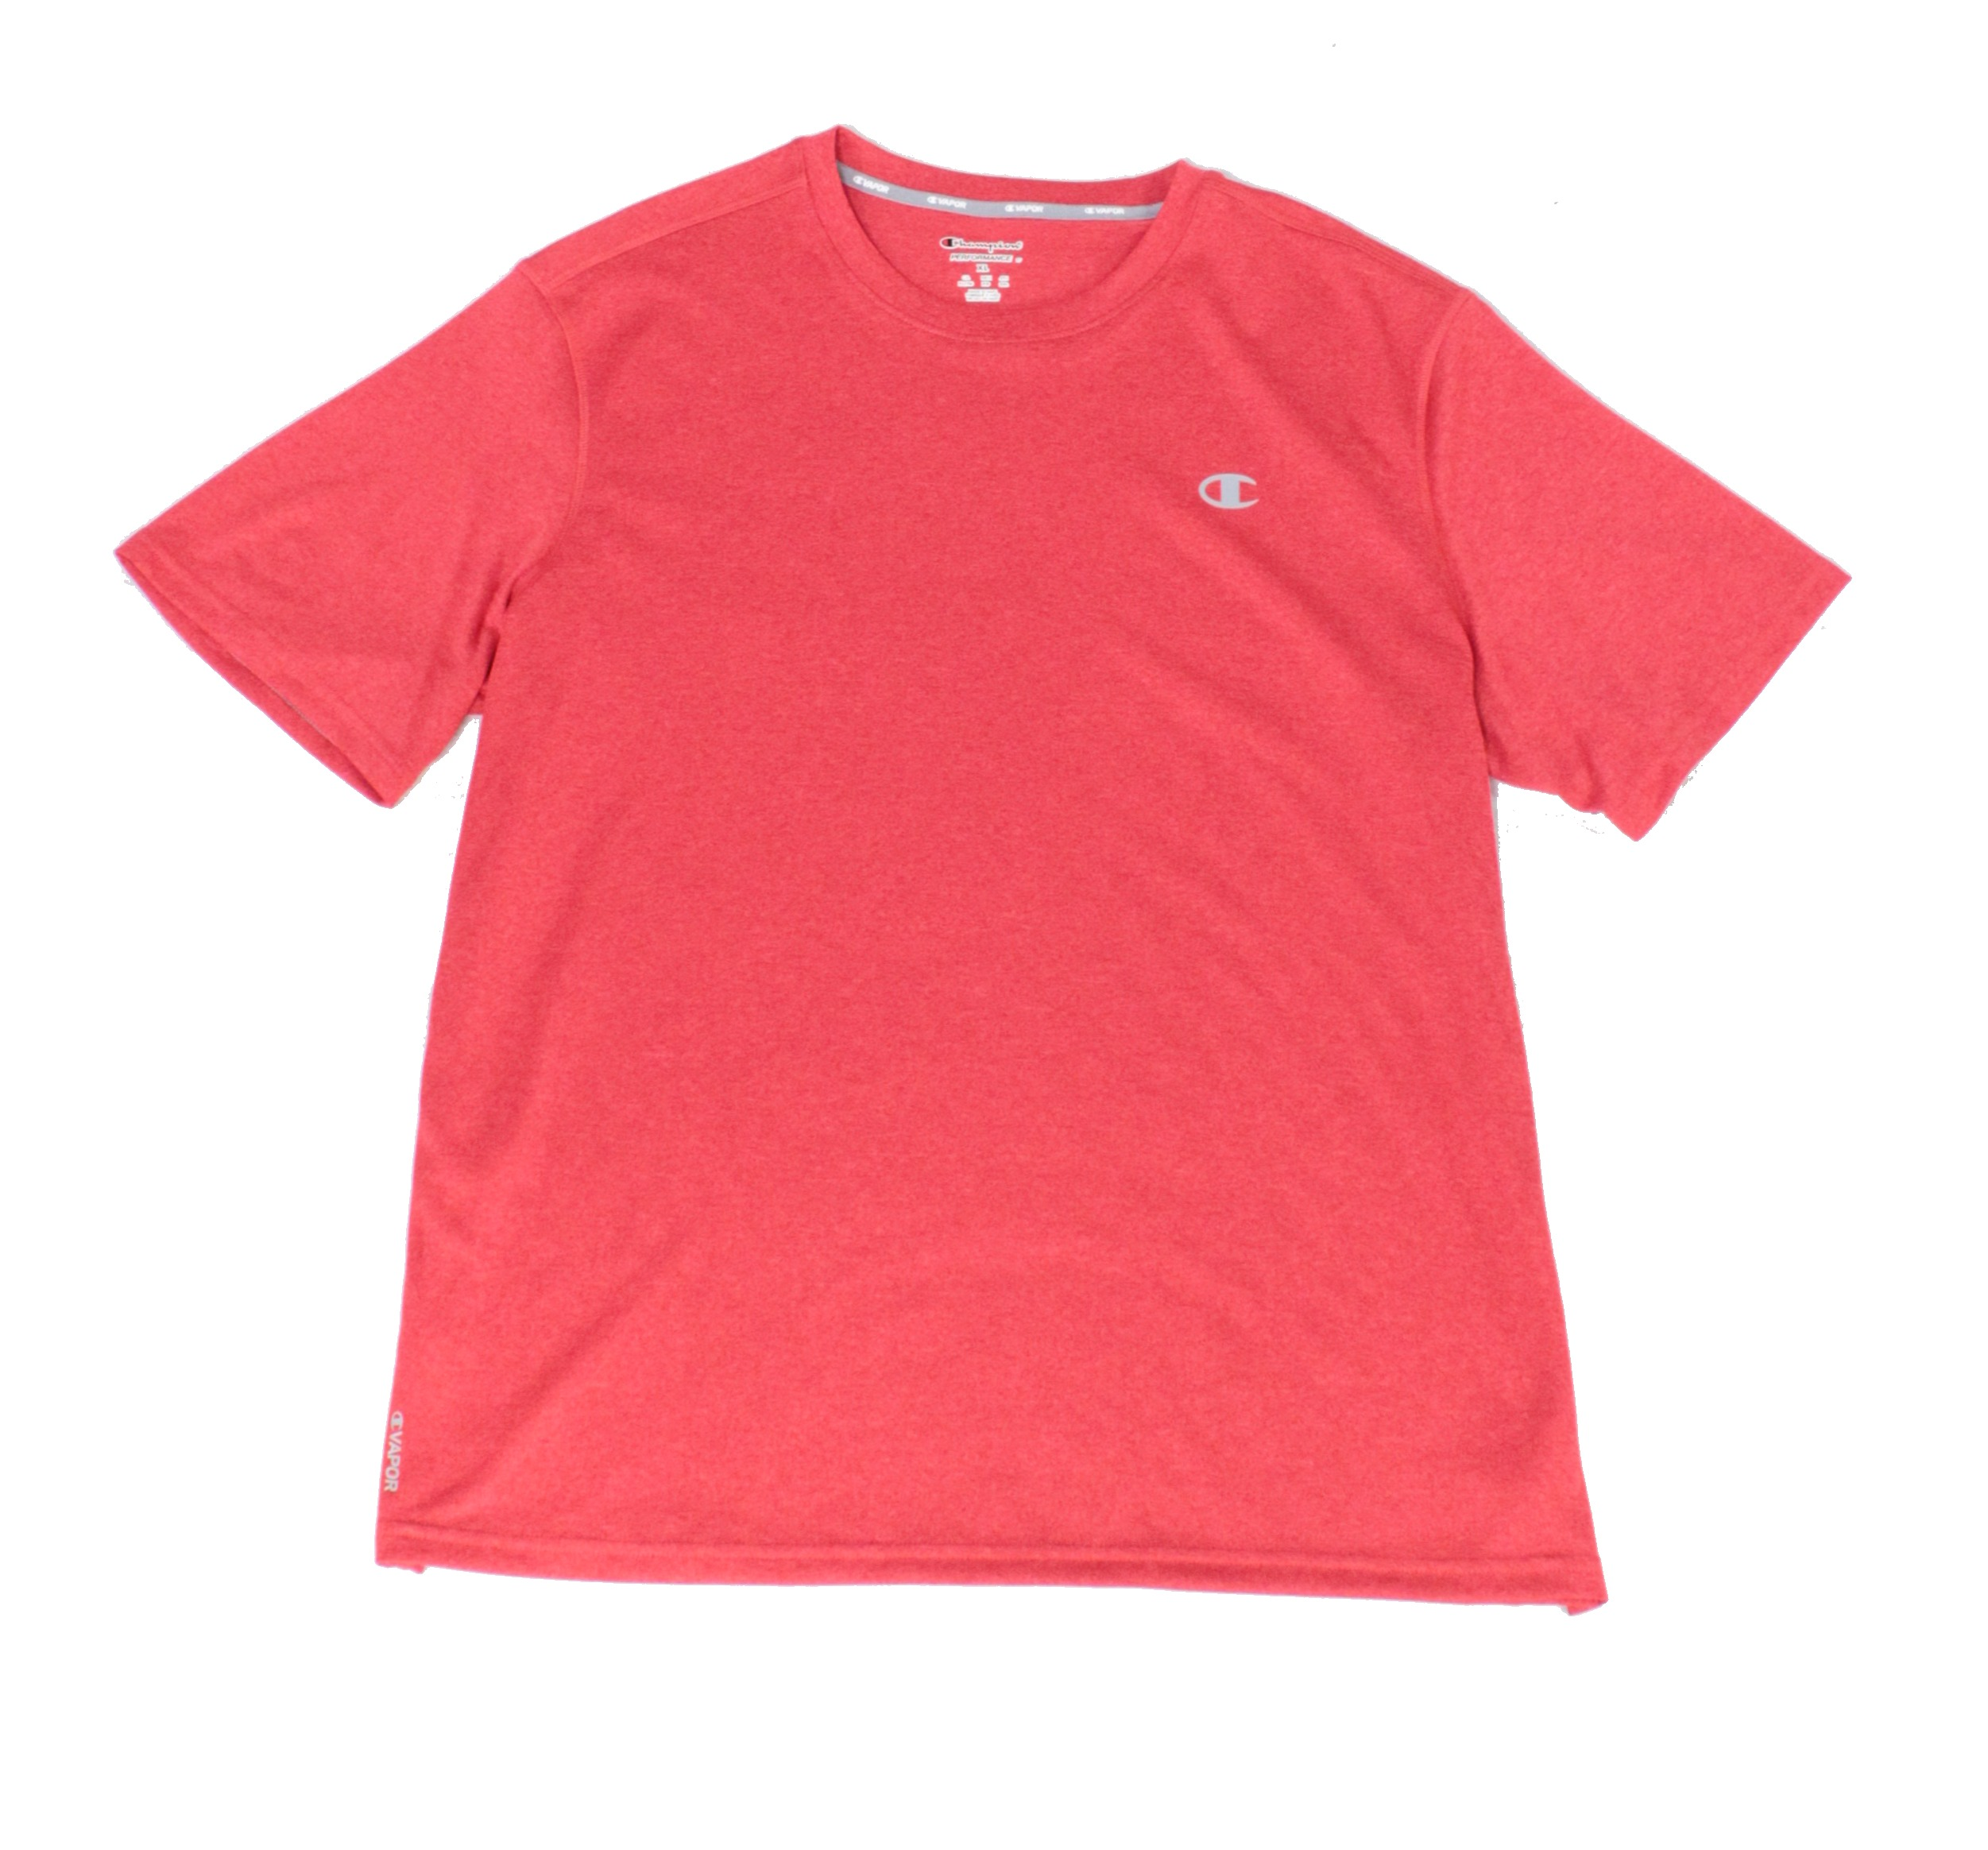 New-Champion-Mens-T-Shirt-Red-Size-XL-Performance-Stretch-Crewneck-Tee-25-111